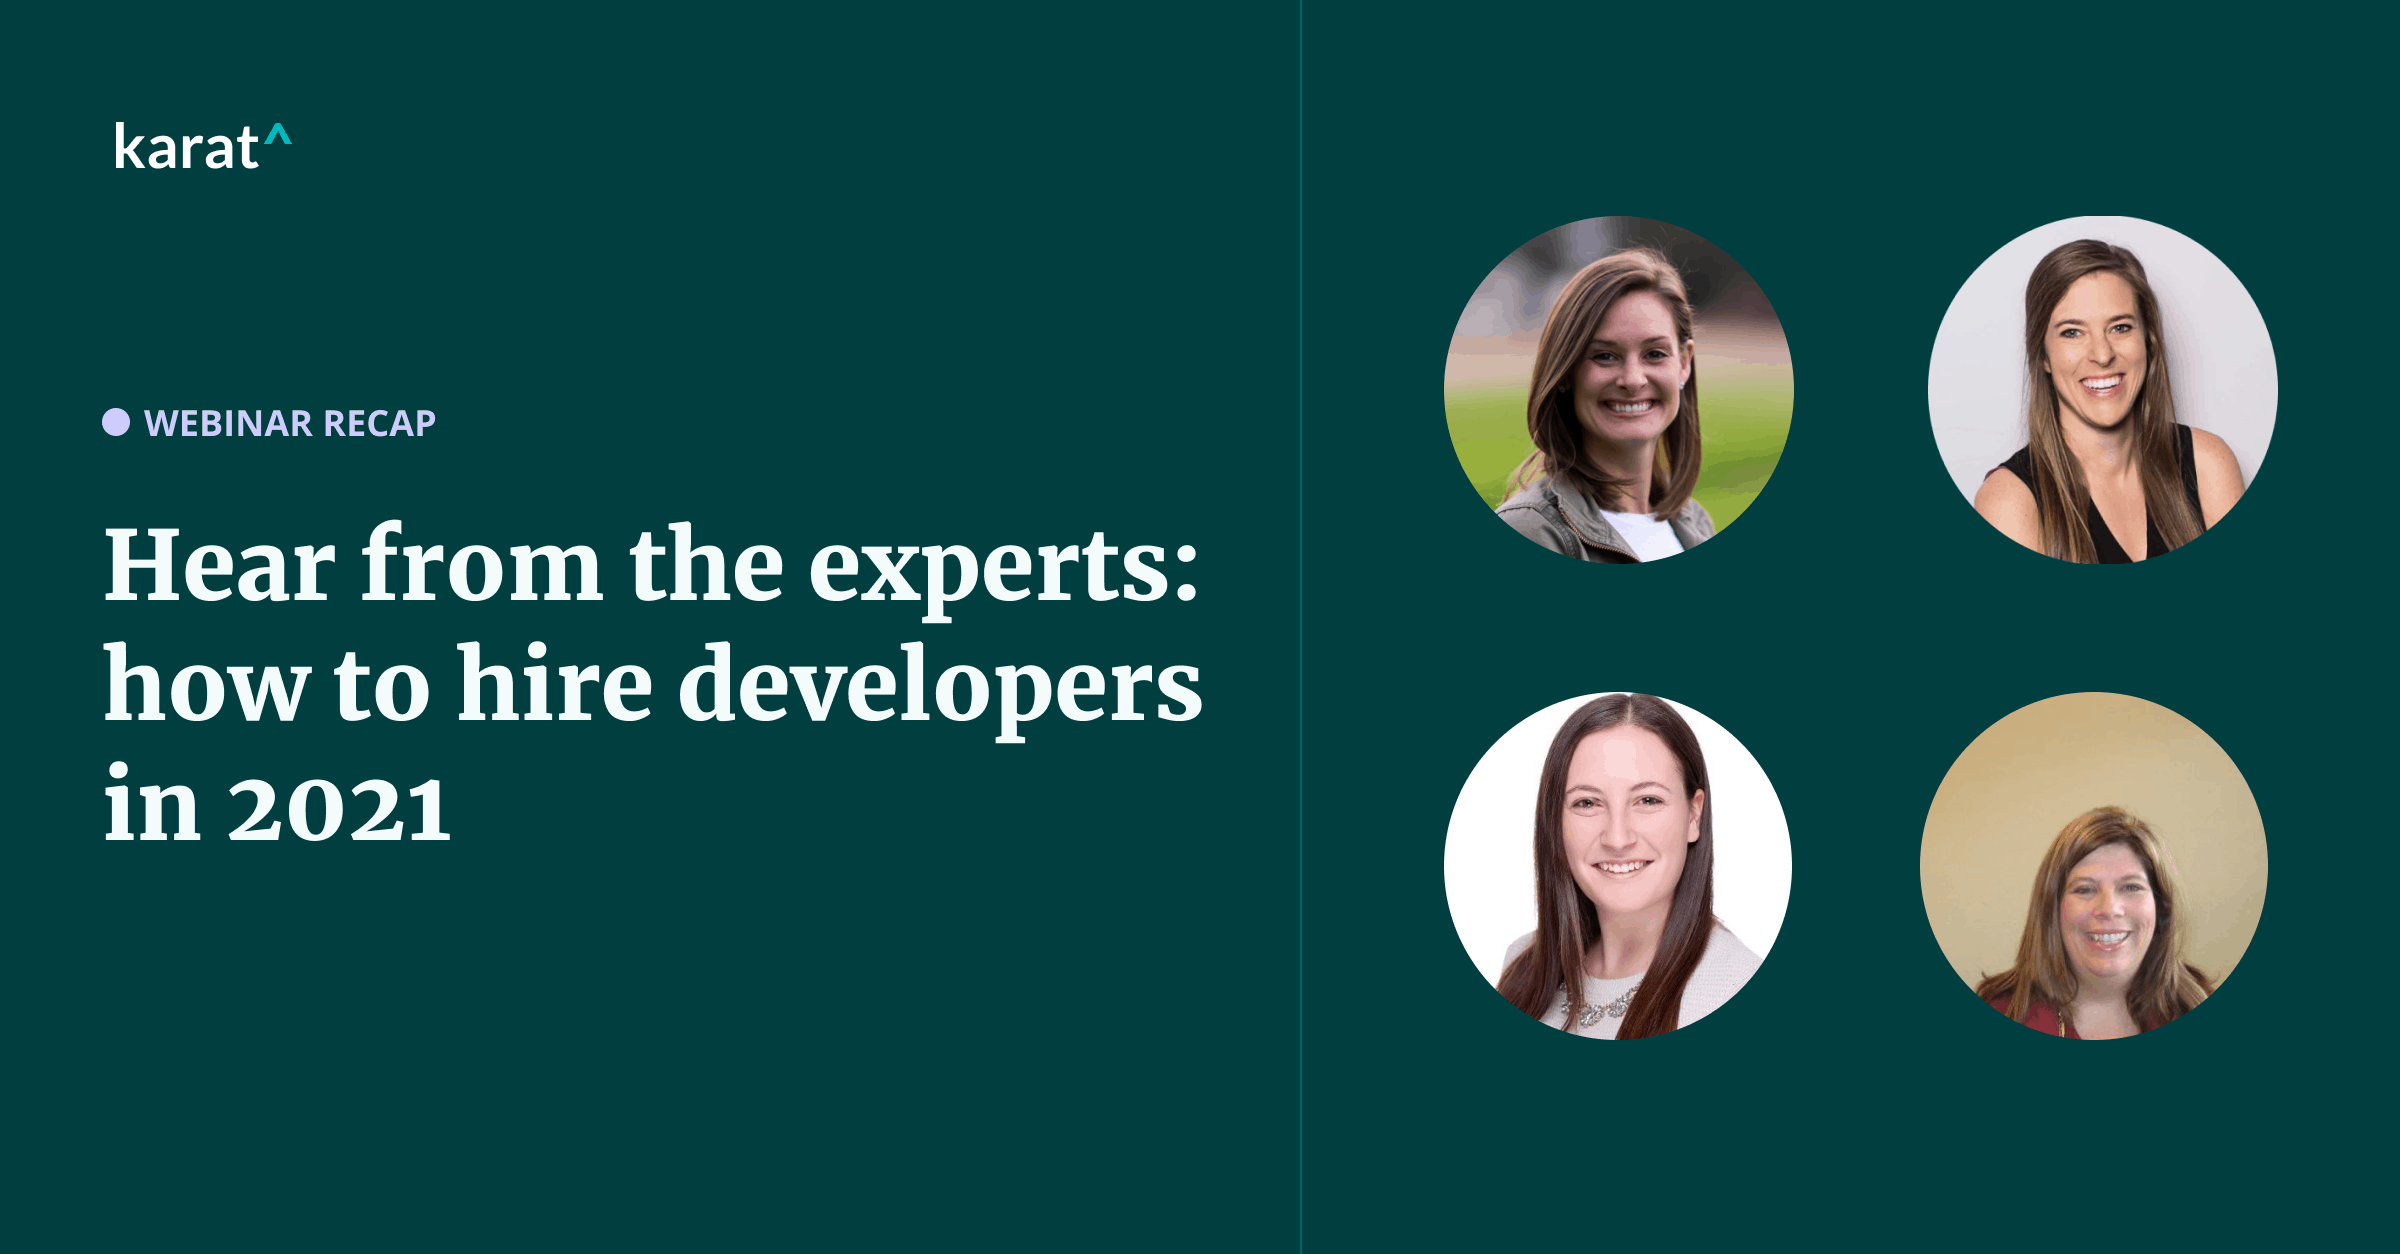 Hear from the experts: how to hire developers in 2021